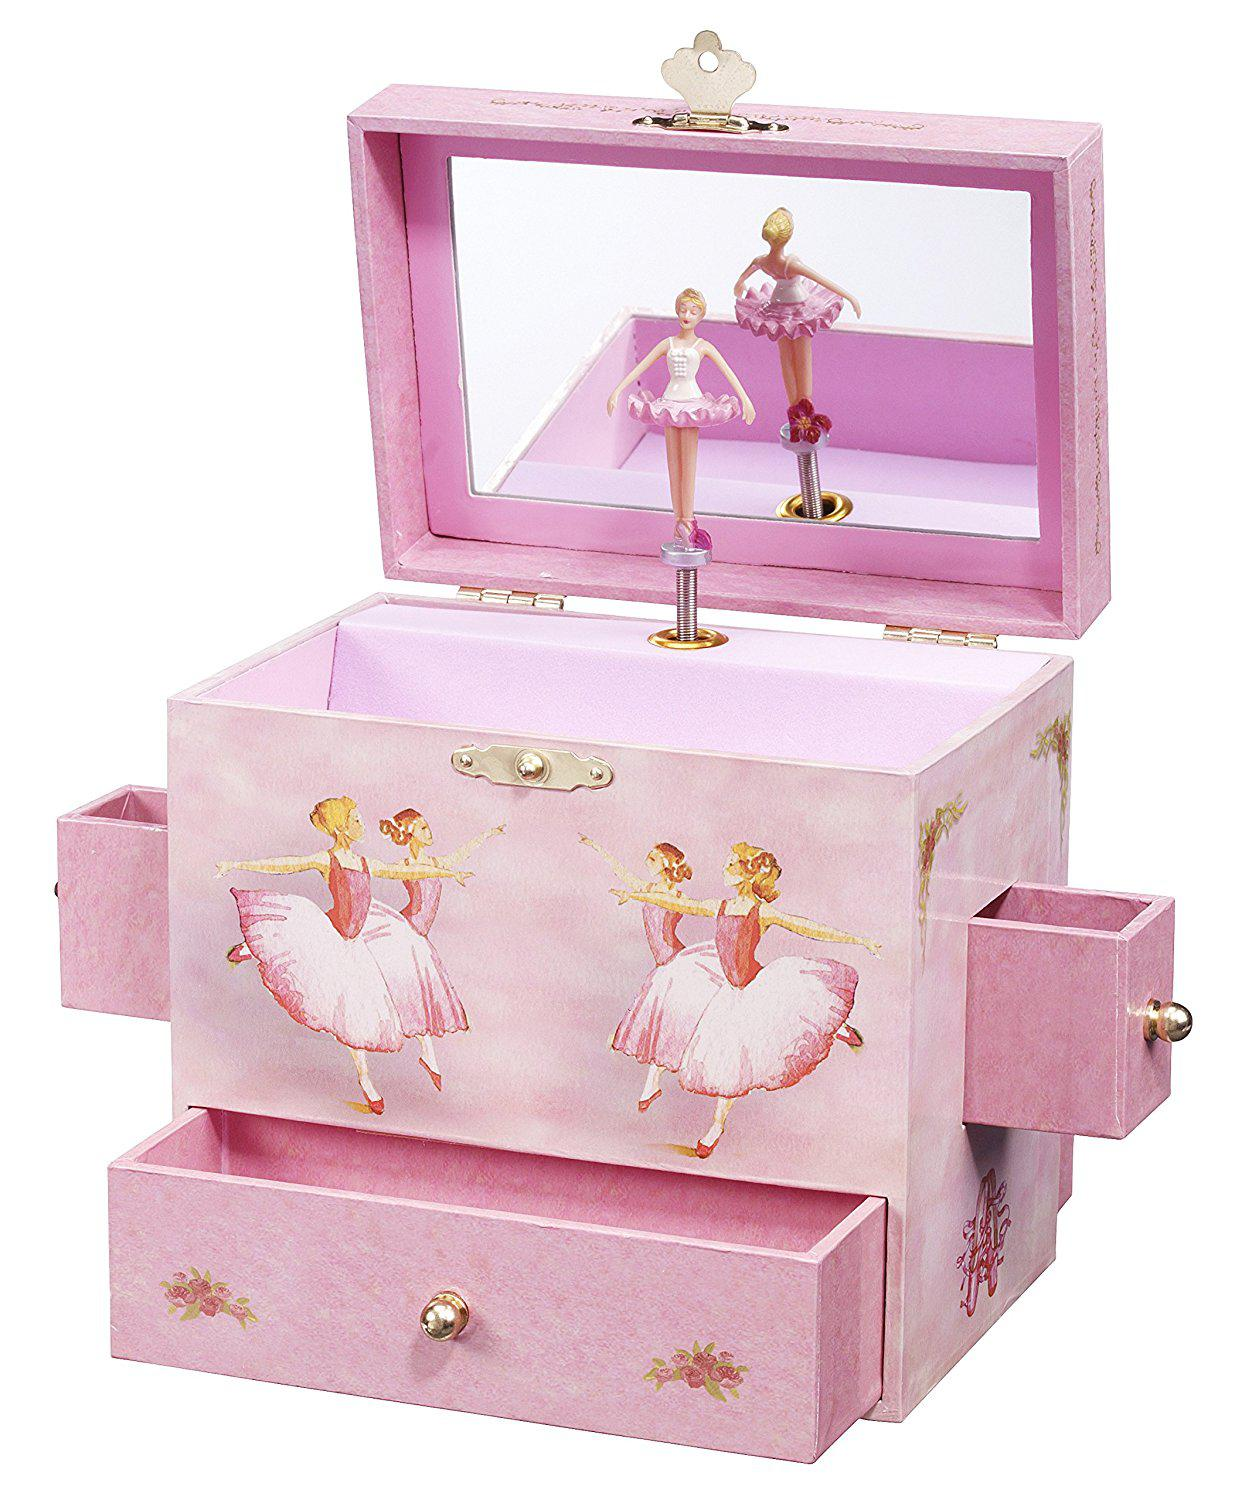 Enchantmints Ballerina Musical Jewelry Box Best Offer Reviews